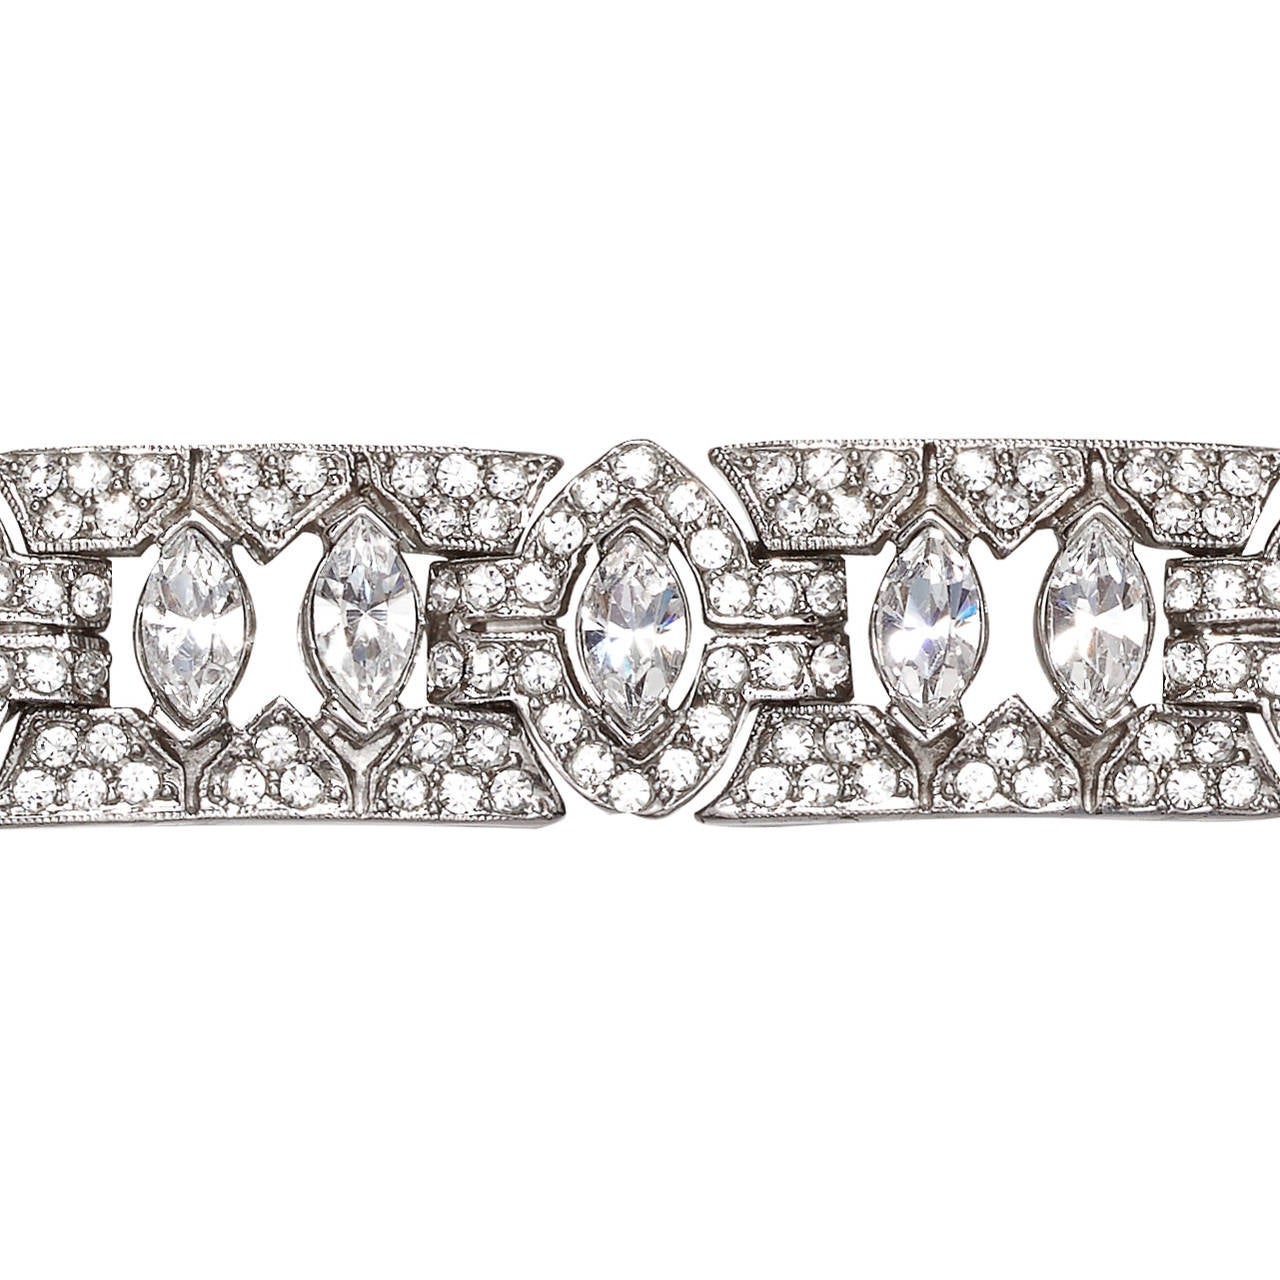 Striking Ciner rhodium plated silvertone bracelet made up of 12x articulated panels, pave set with clear Swarovski crystal rhinestones, in an alternating Art Deco inspired geometric design.  Marked: Ciner (c)